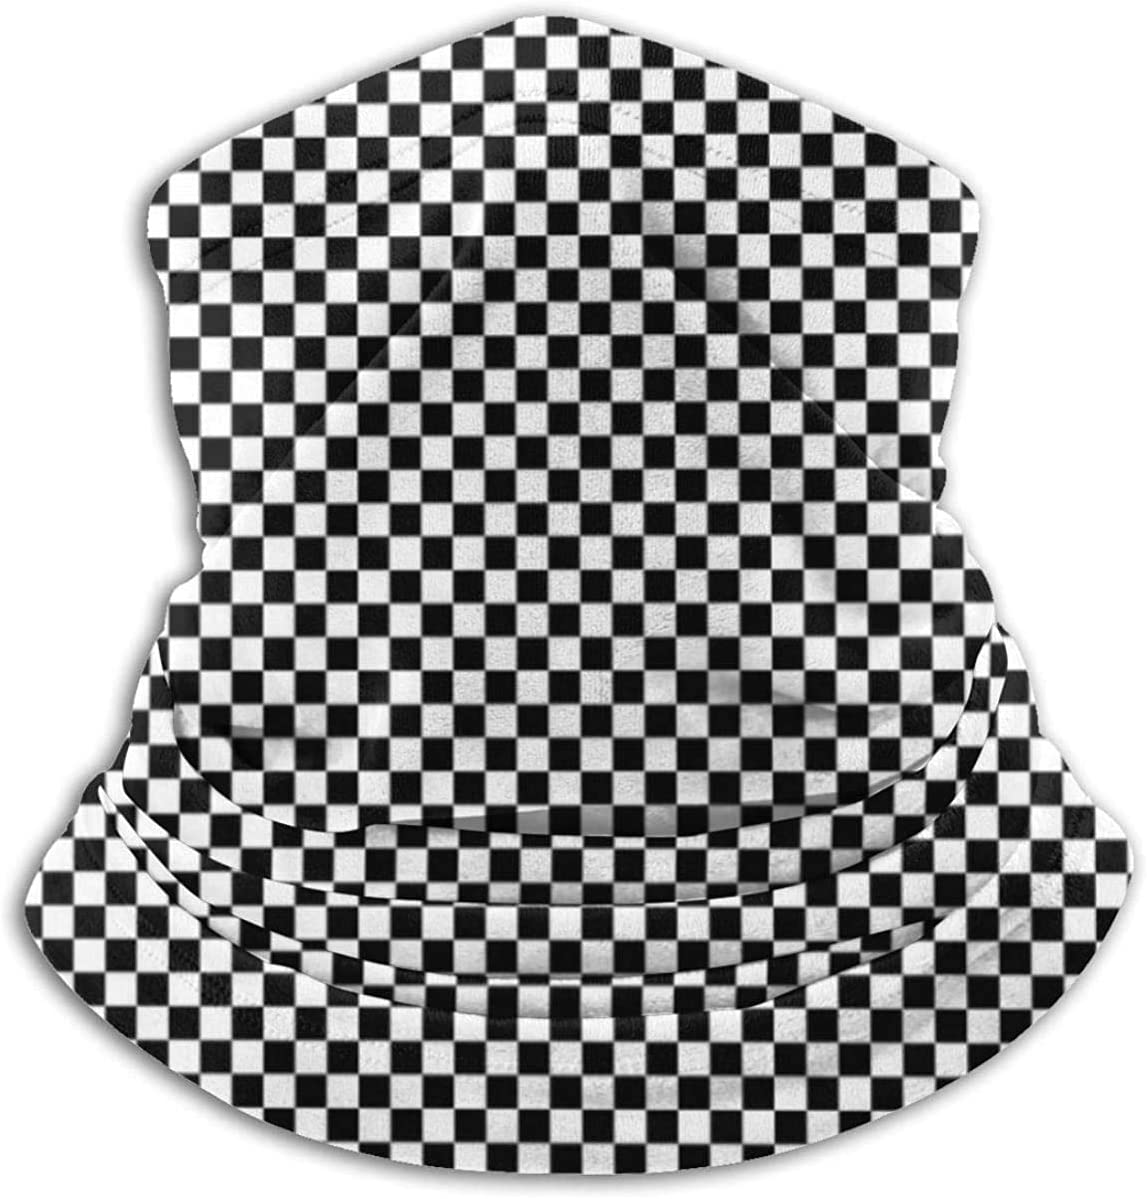 Lastbest Checkered Geometric Background with Black Neck Warmer Multifunction Scarf Hat Neck Gaiter Neck Cap Bala Windproof Neck Heating Wrap Outdoor Sports